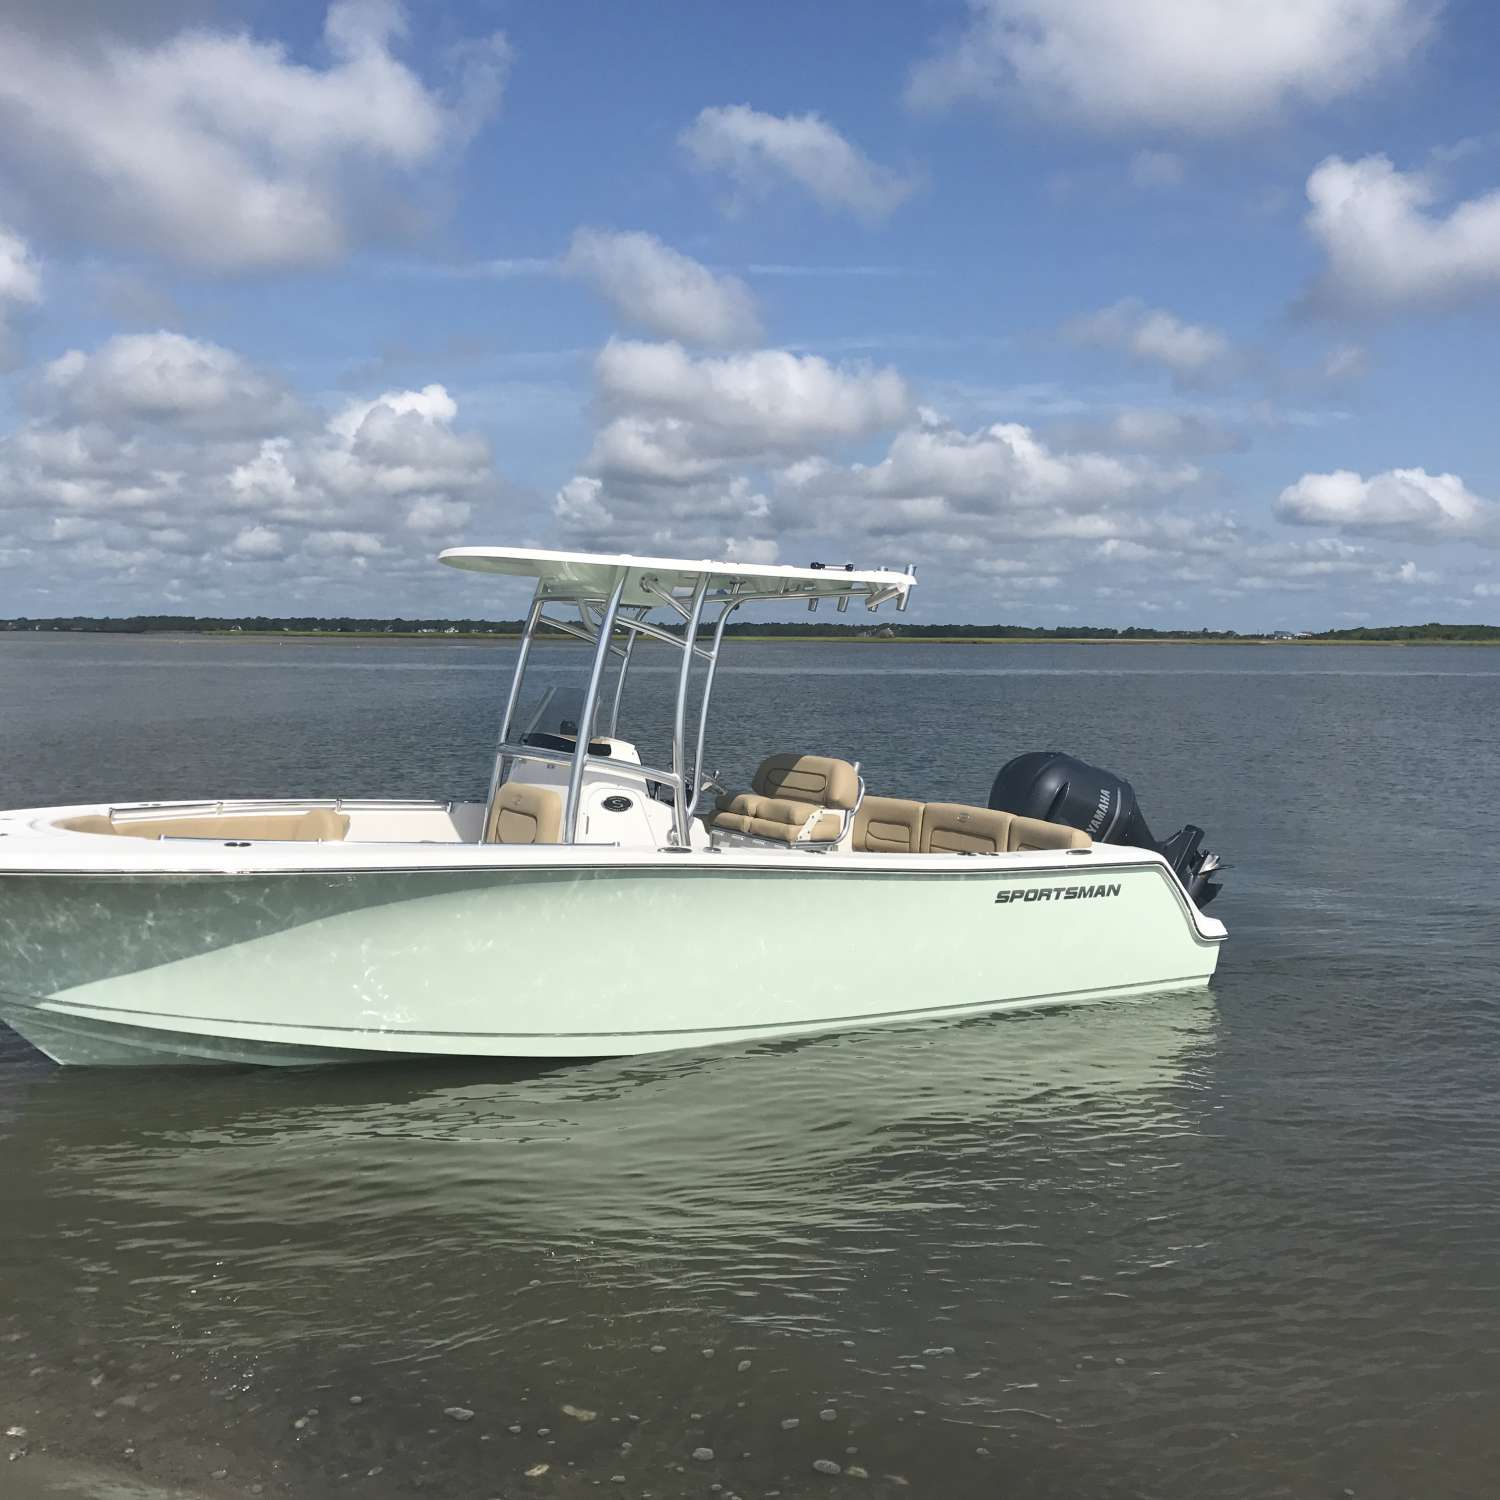 Title: Morris Island, Day 2 On New 231 - On board their Sportsman Heritage 231 Center Console - Location: Johns Island, South Carolina. Participating in the Photo Contest #SportsmanJune2017